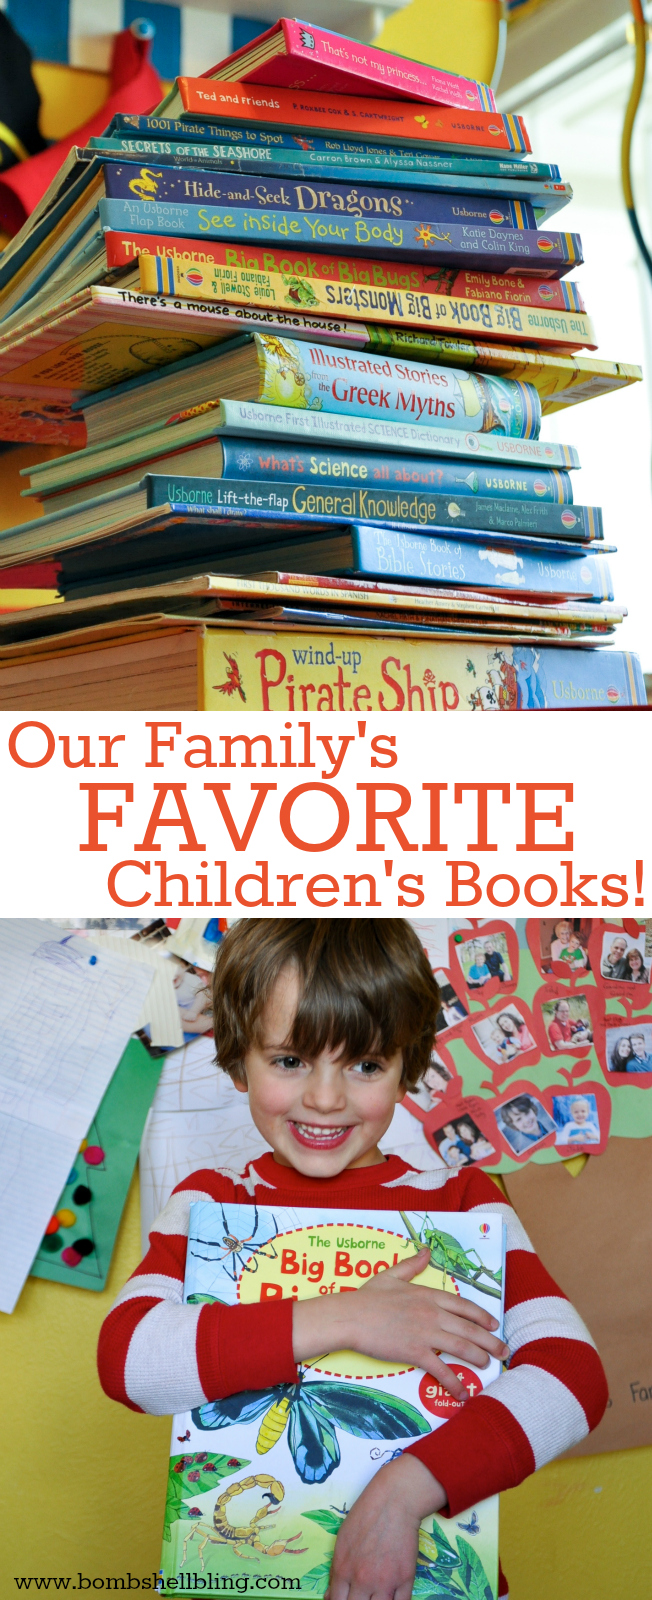 Our Family's FAVORITE Children's Books!